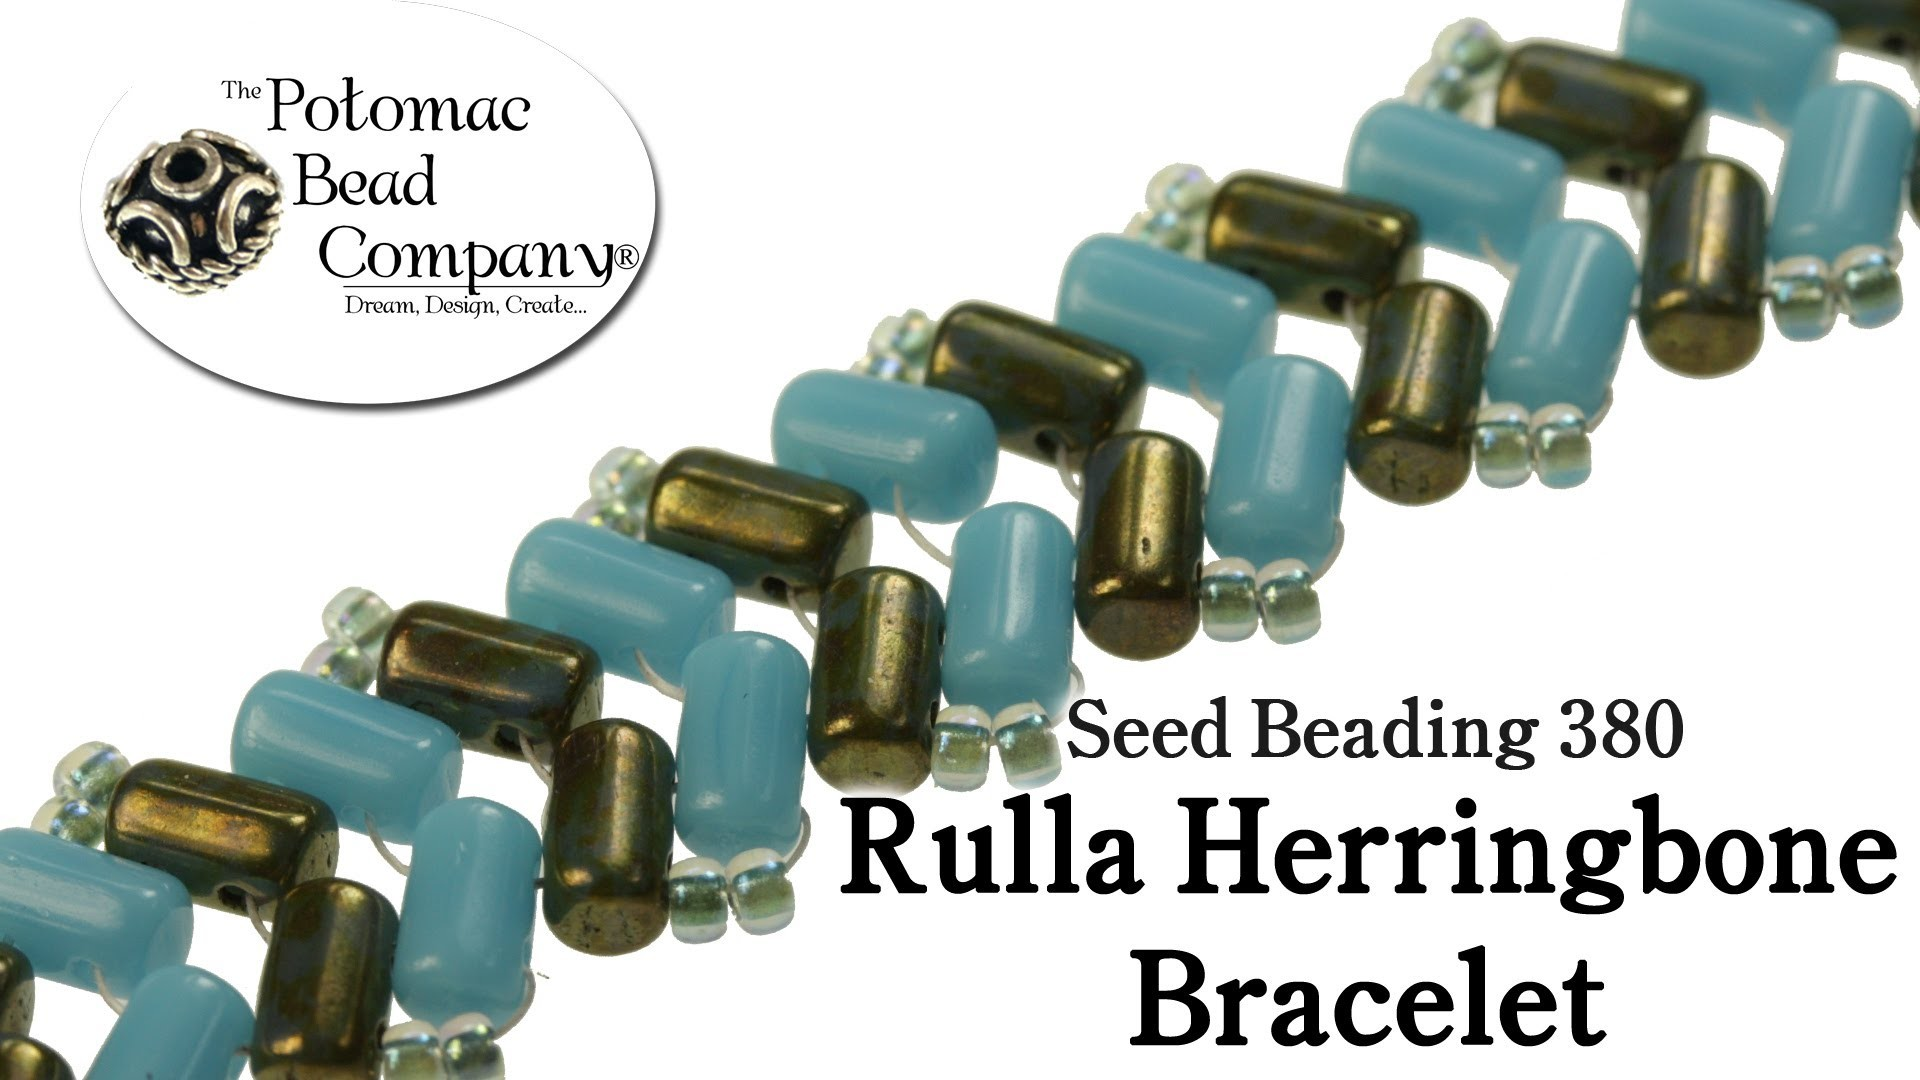 How to Make Rulla Herringbone Bracelet